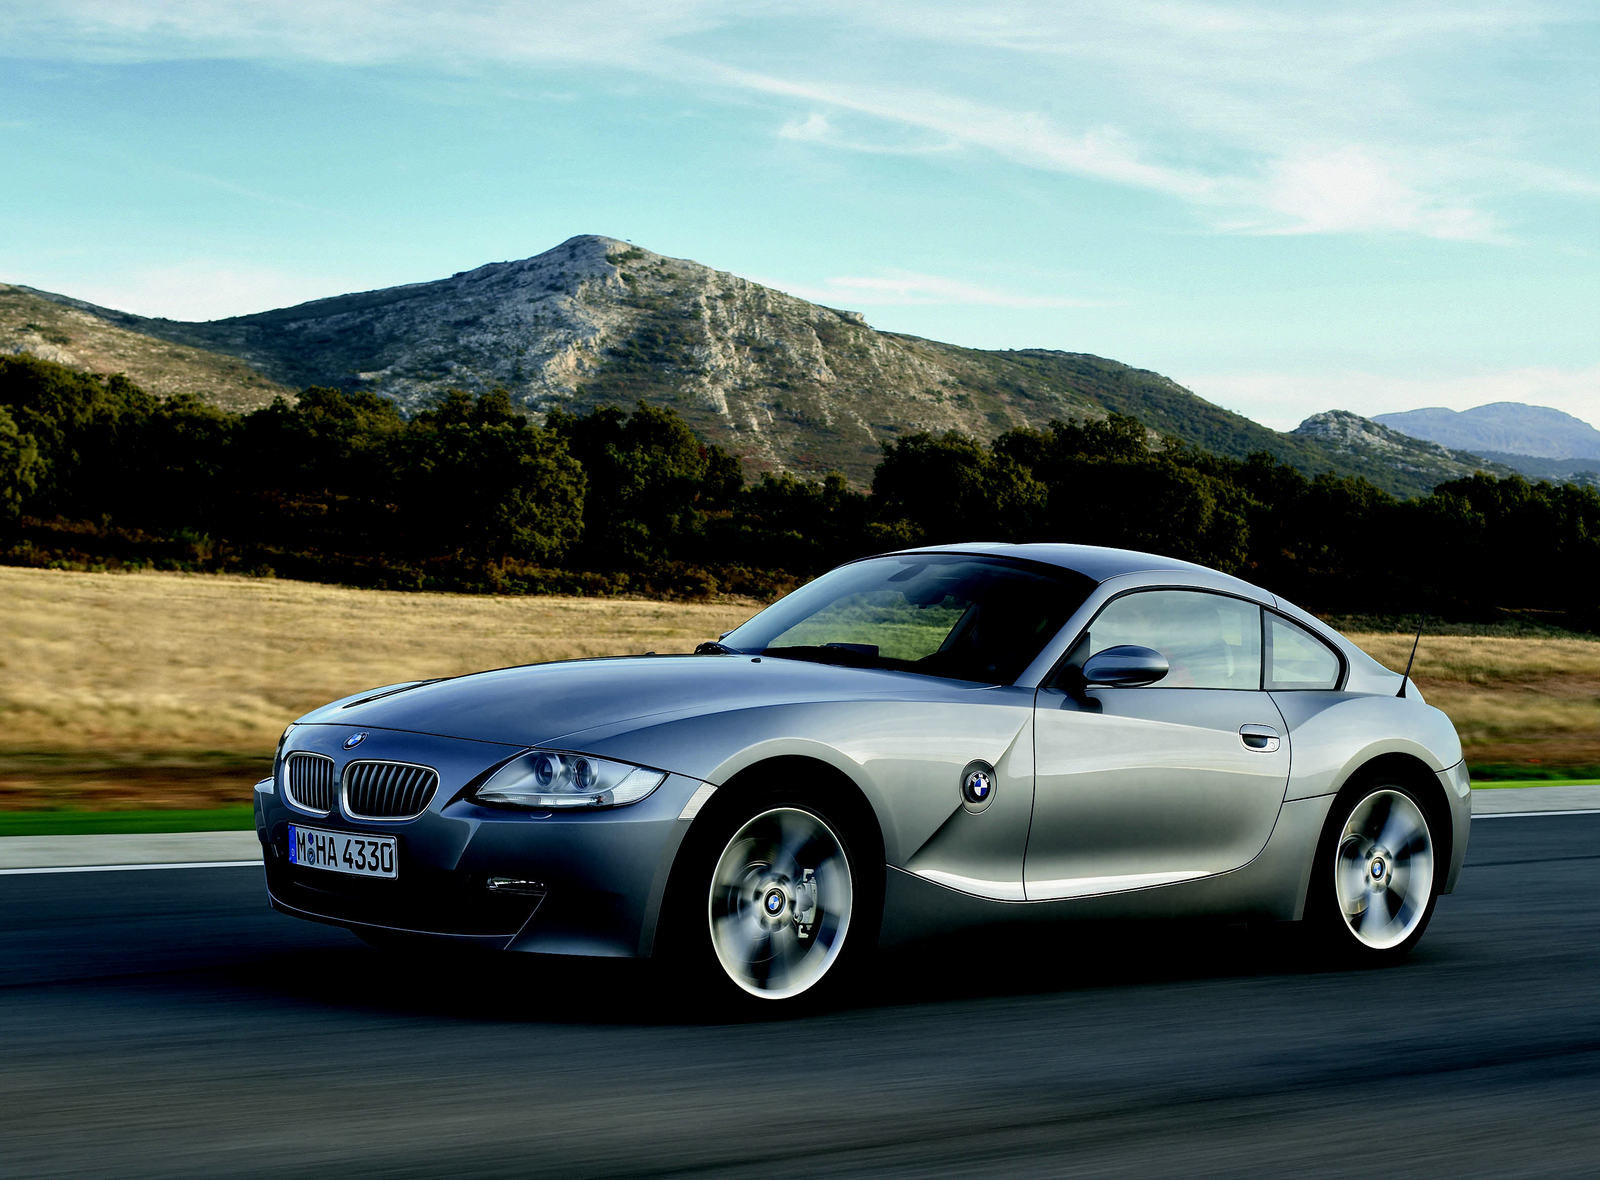 2007 bmw z4 coupe picture 35689 car review top speed. Black Bedroom Furniture Sets. Home Design Ideas